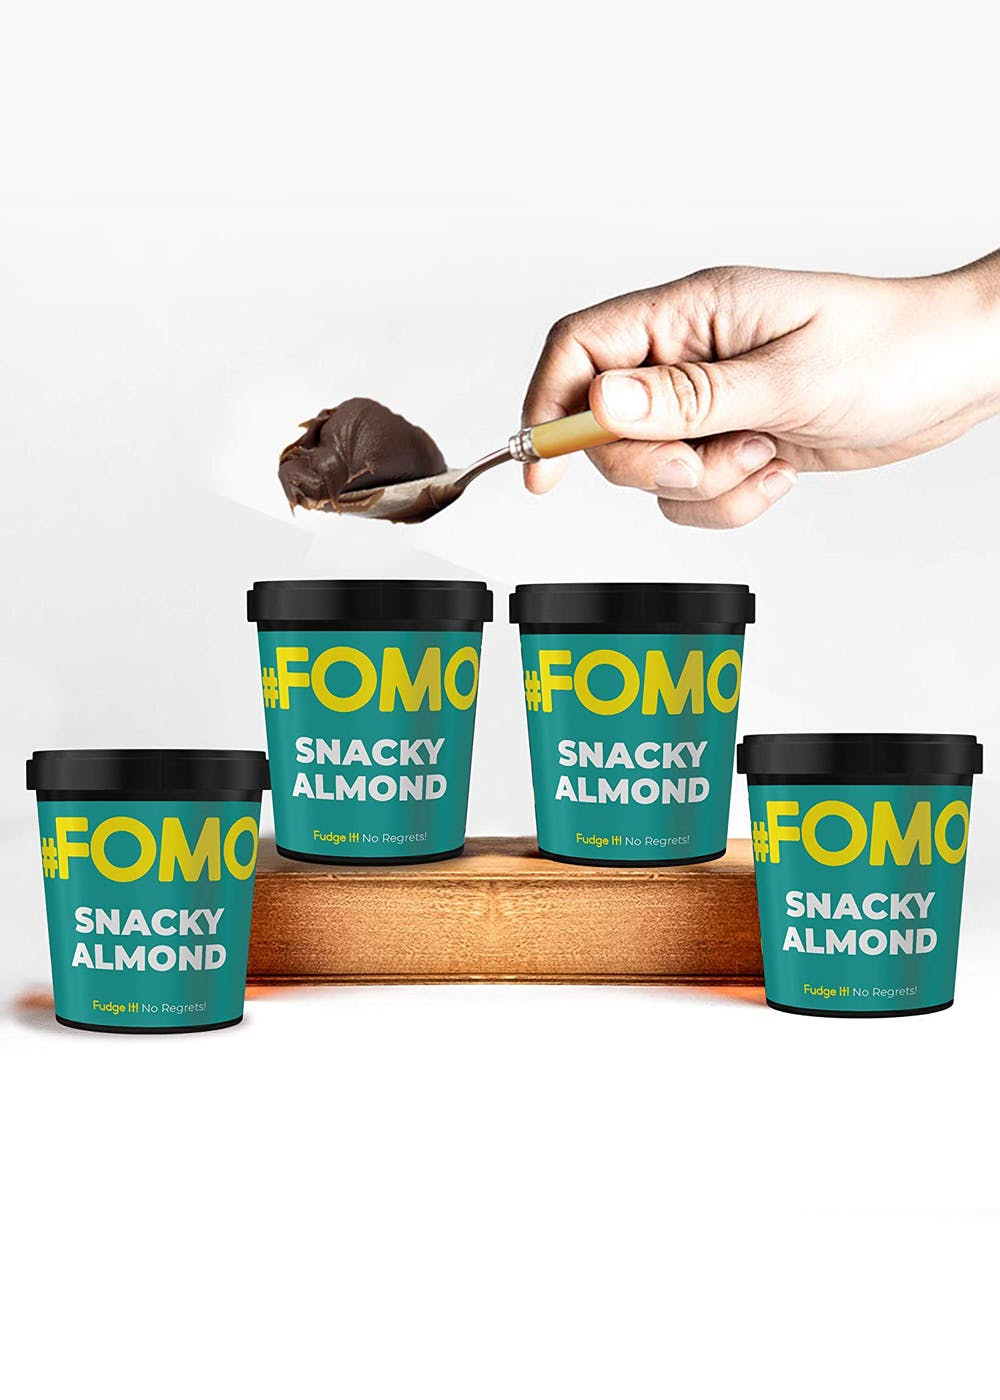 Snacky Almond Chocolate Fudge - Pack of 4 (100g Each)